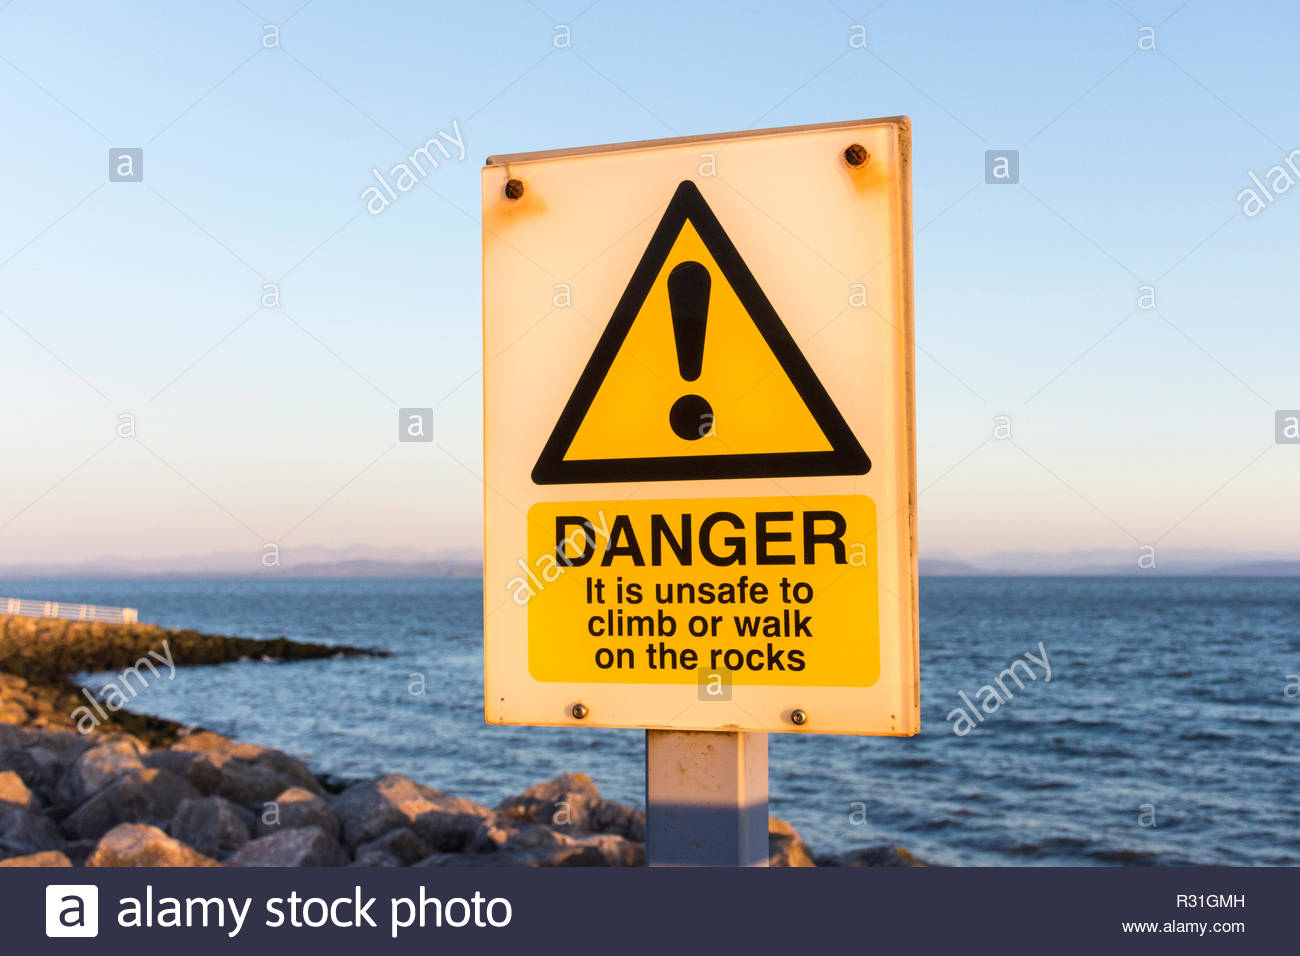 Sign on the promenade at Morecambe - Danger, it is unsafe to climb or walk on the rocks - Stock Image